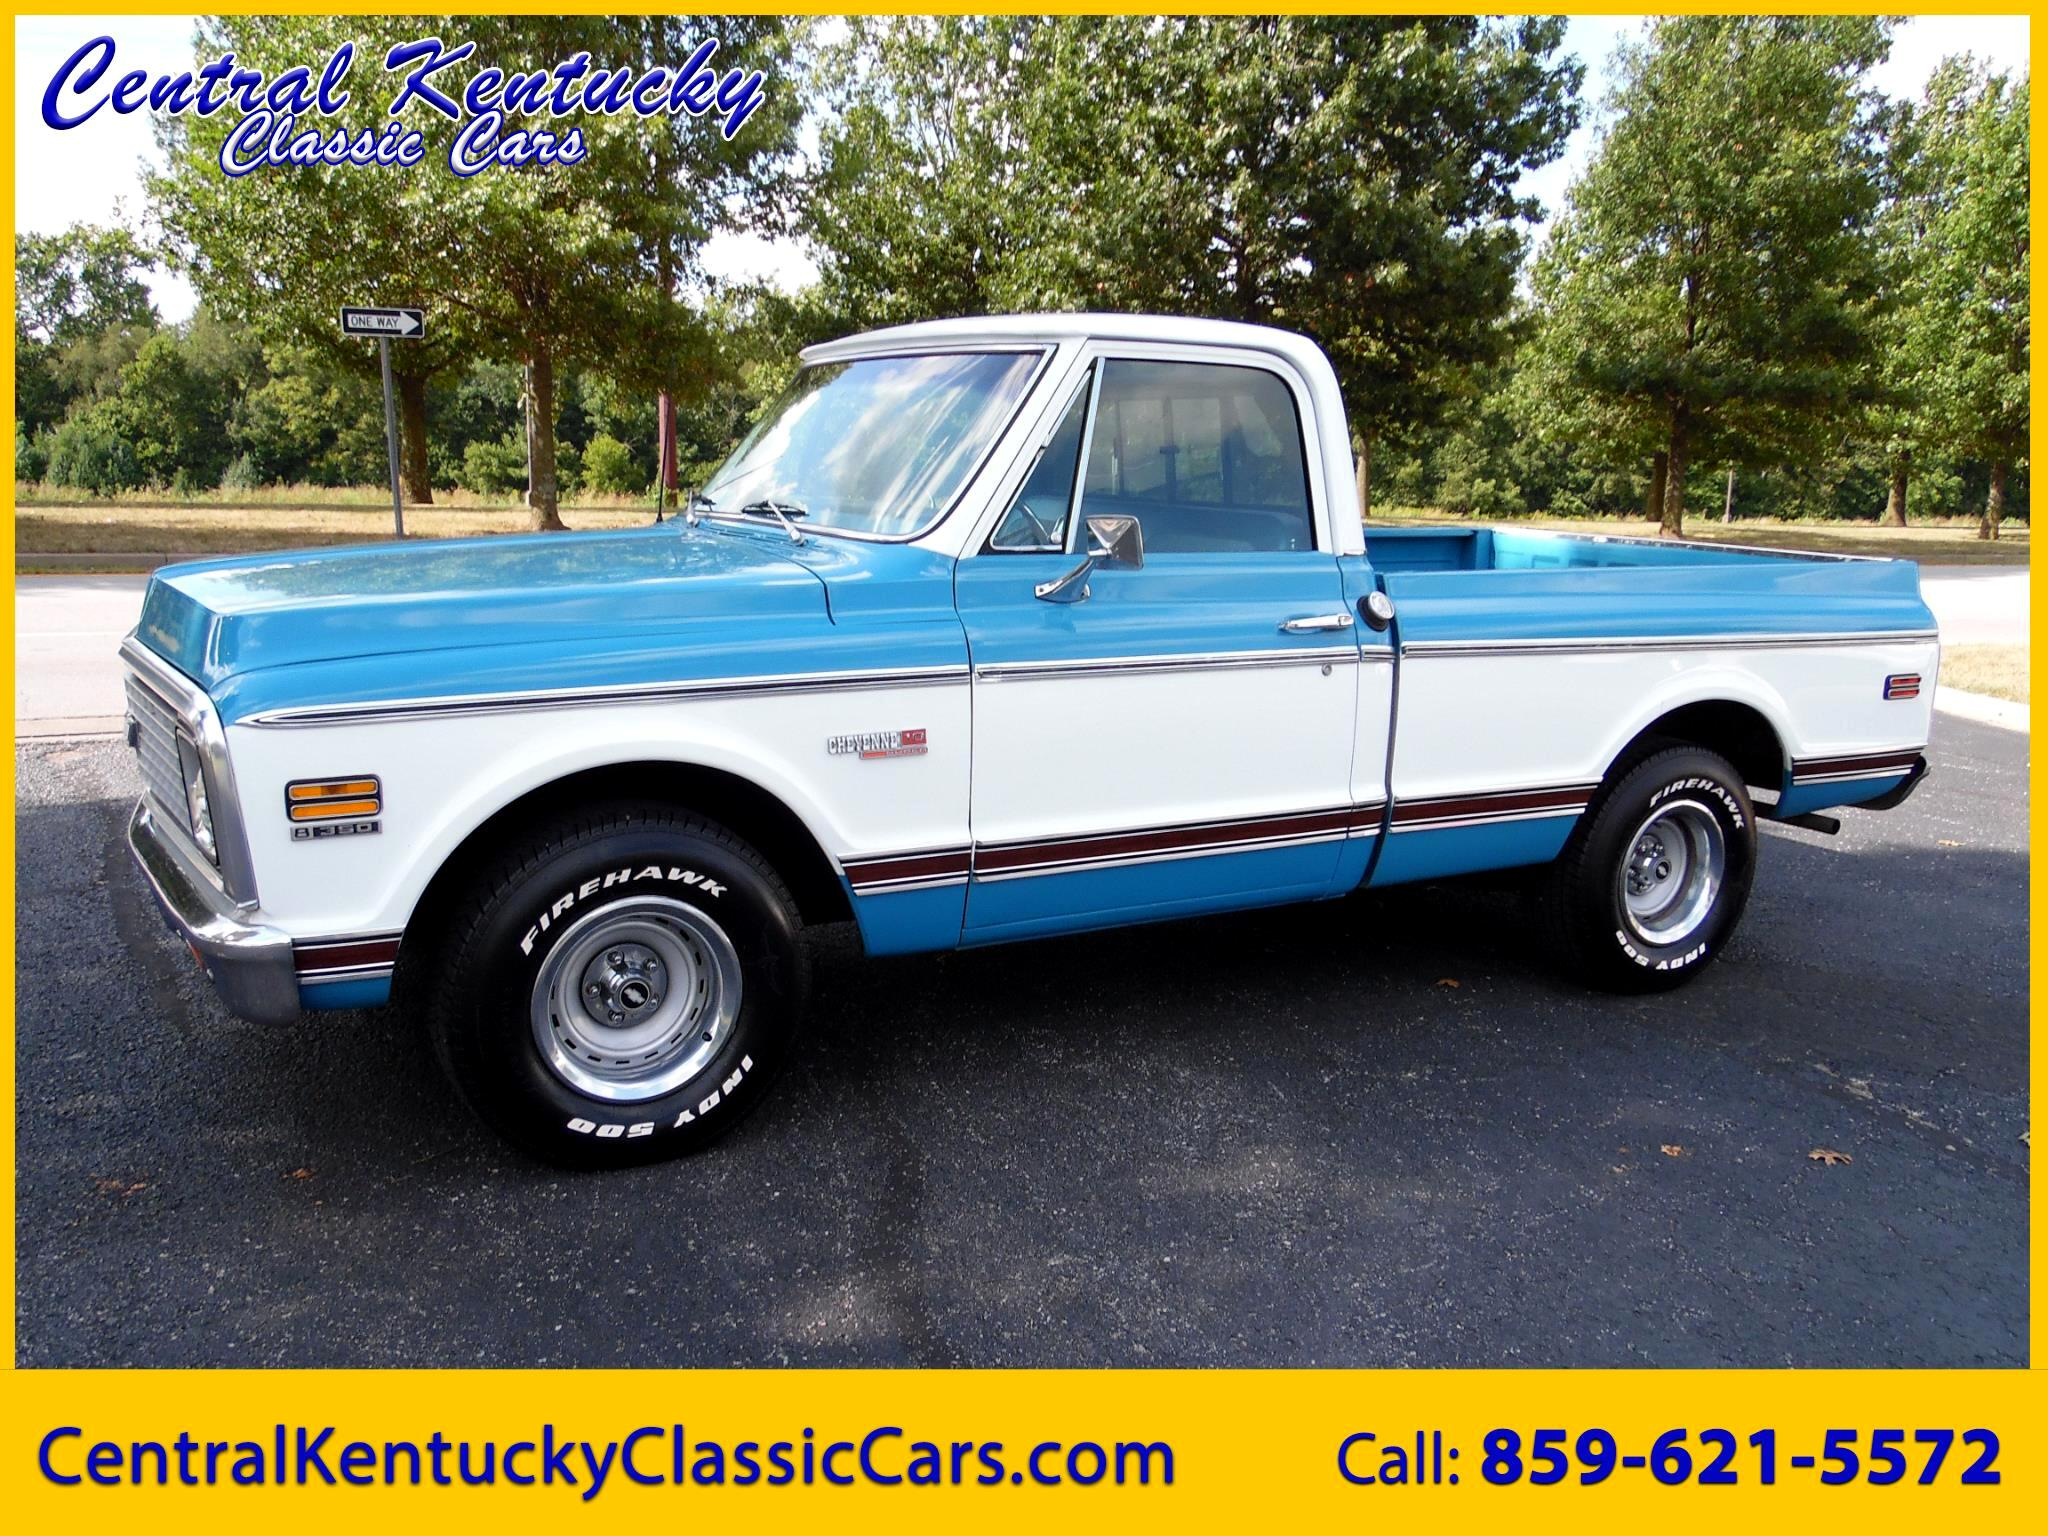 1972 Chevrolet Trucks C10 Super Cheyenne